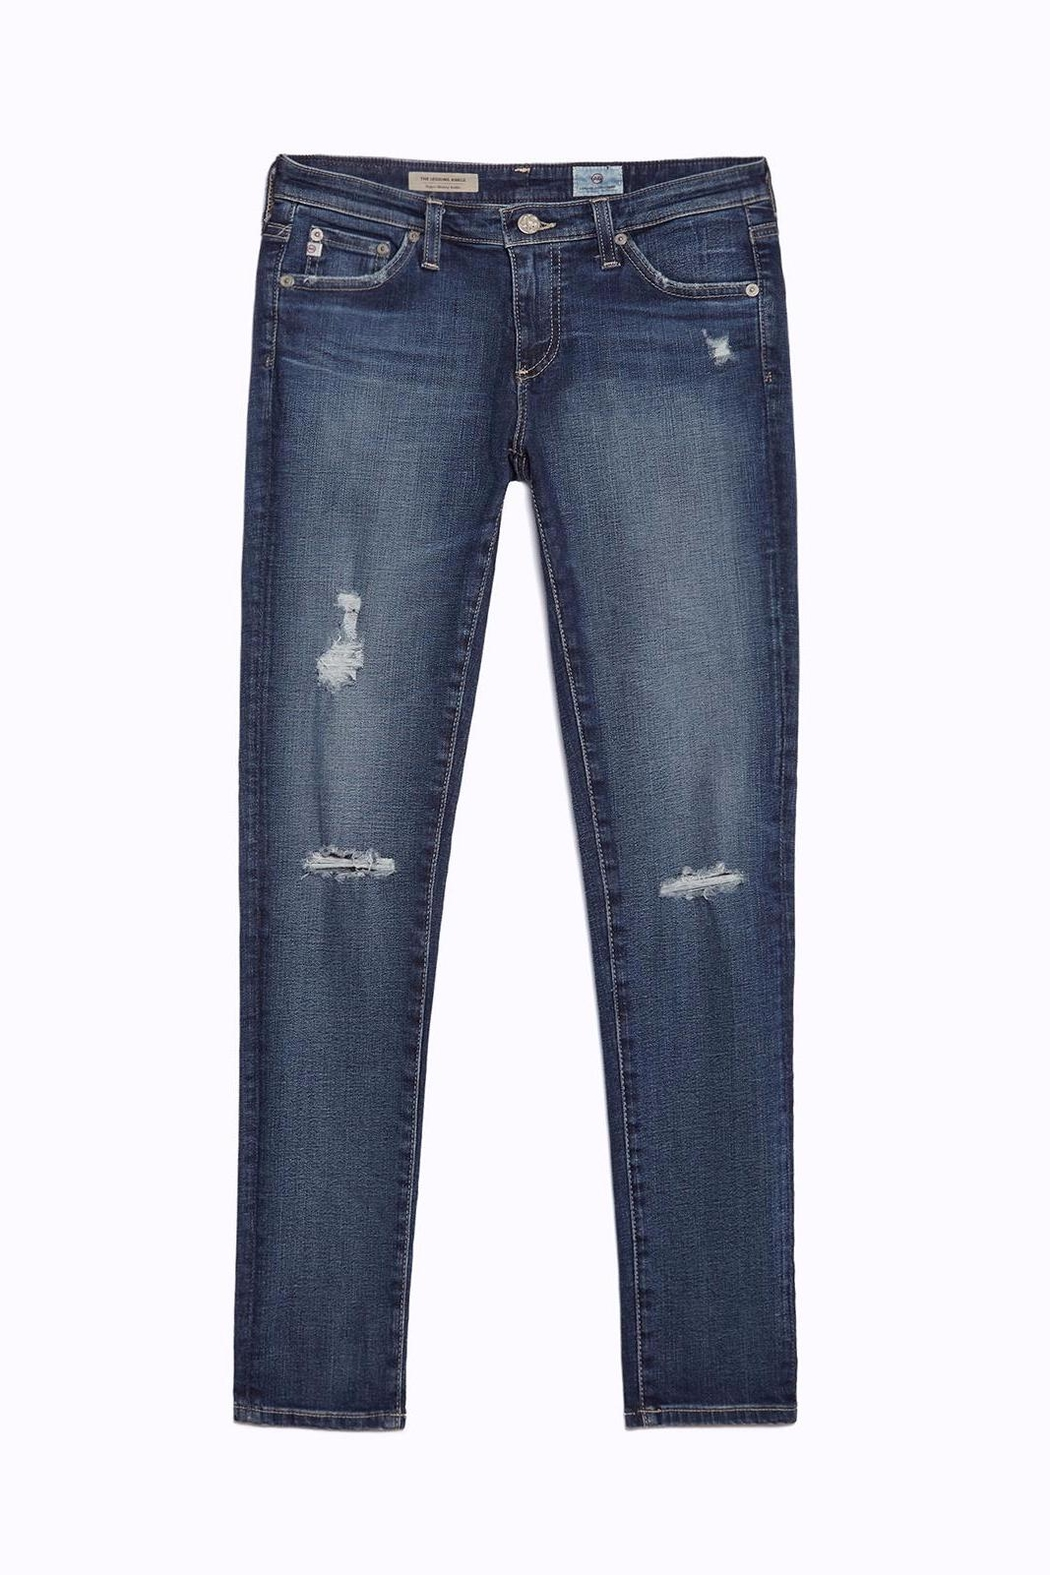 AG Jeans Ankle Skinny Jeans - Main Image